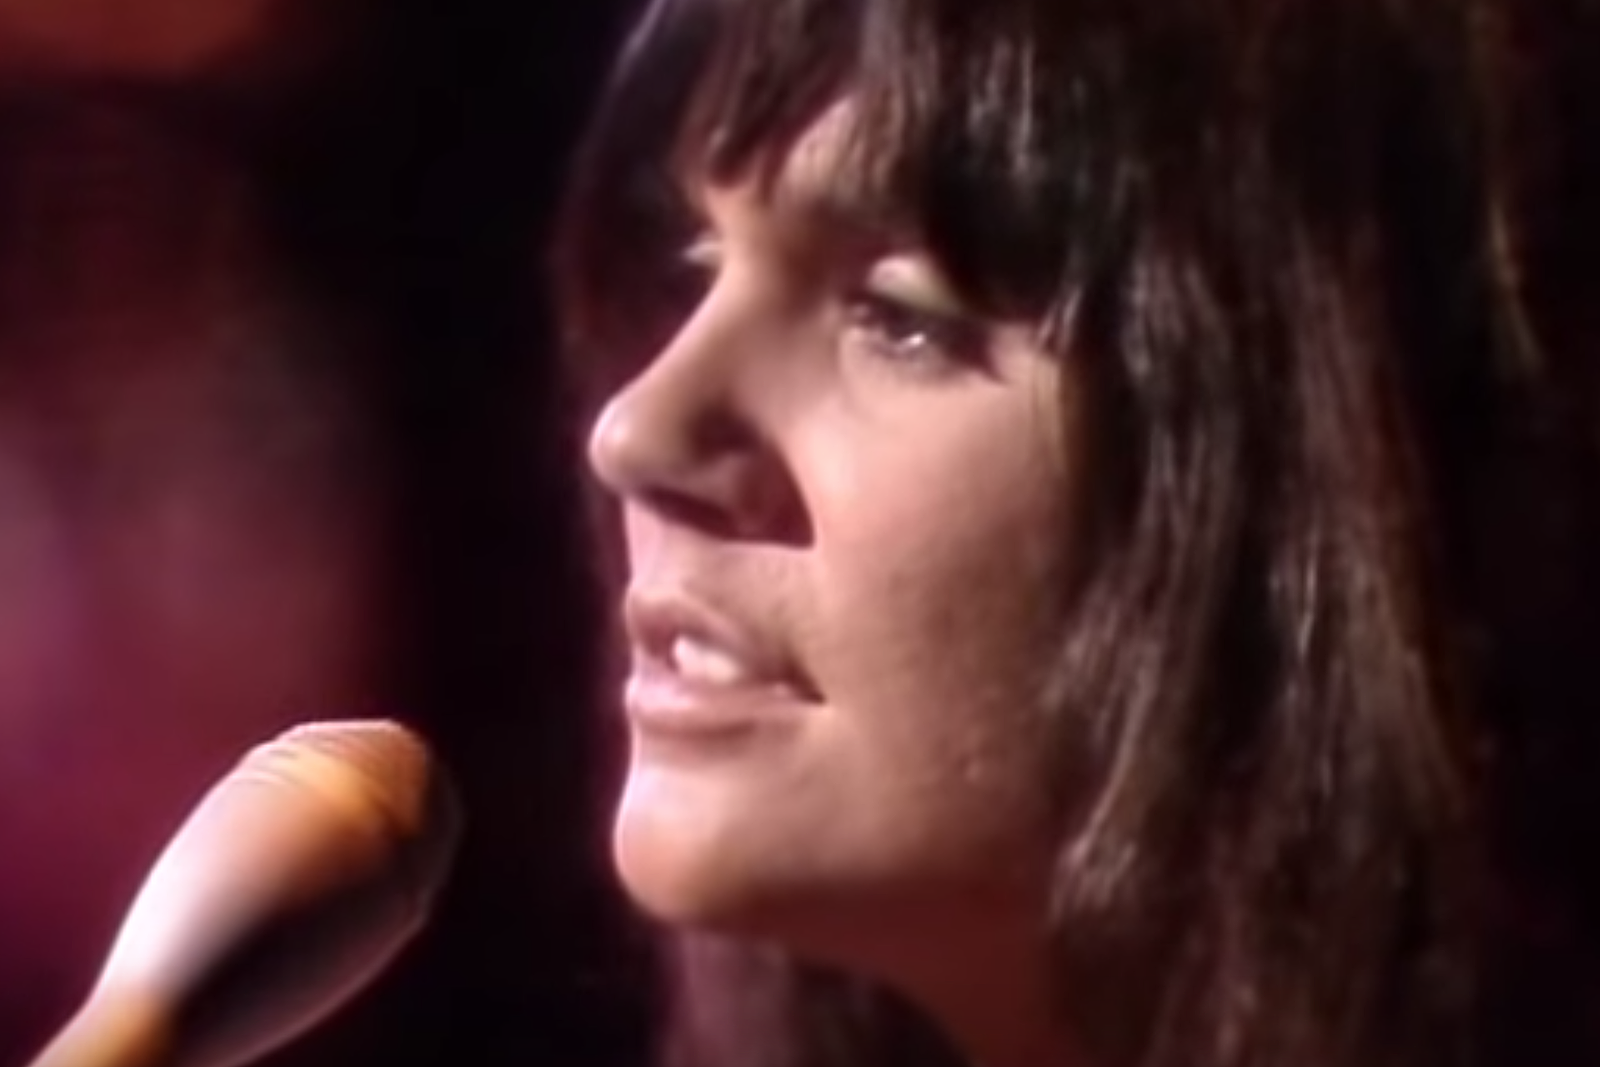 Linda Ronstadt Admits She Wasn't Ready for Early Stint With Neil Young: Exclusive Interview